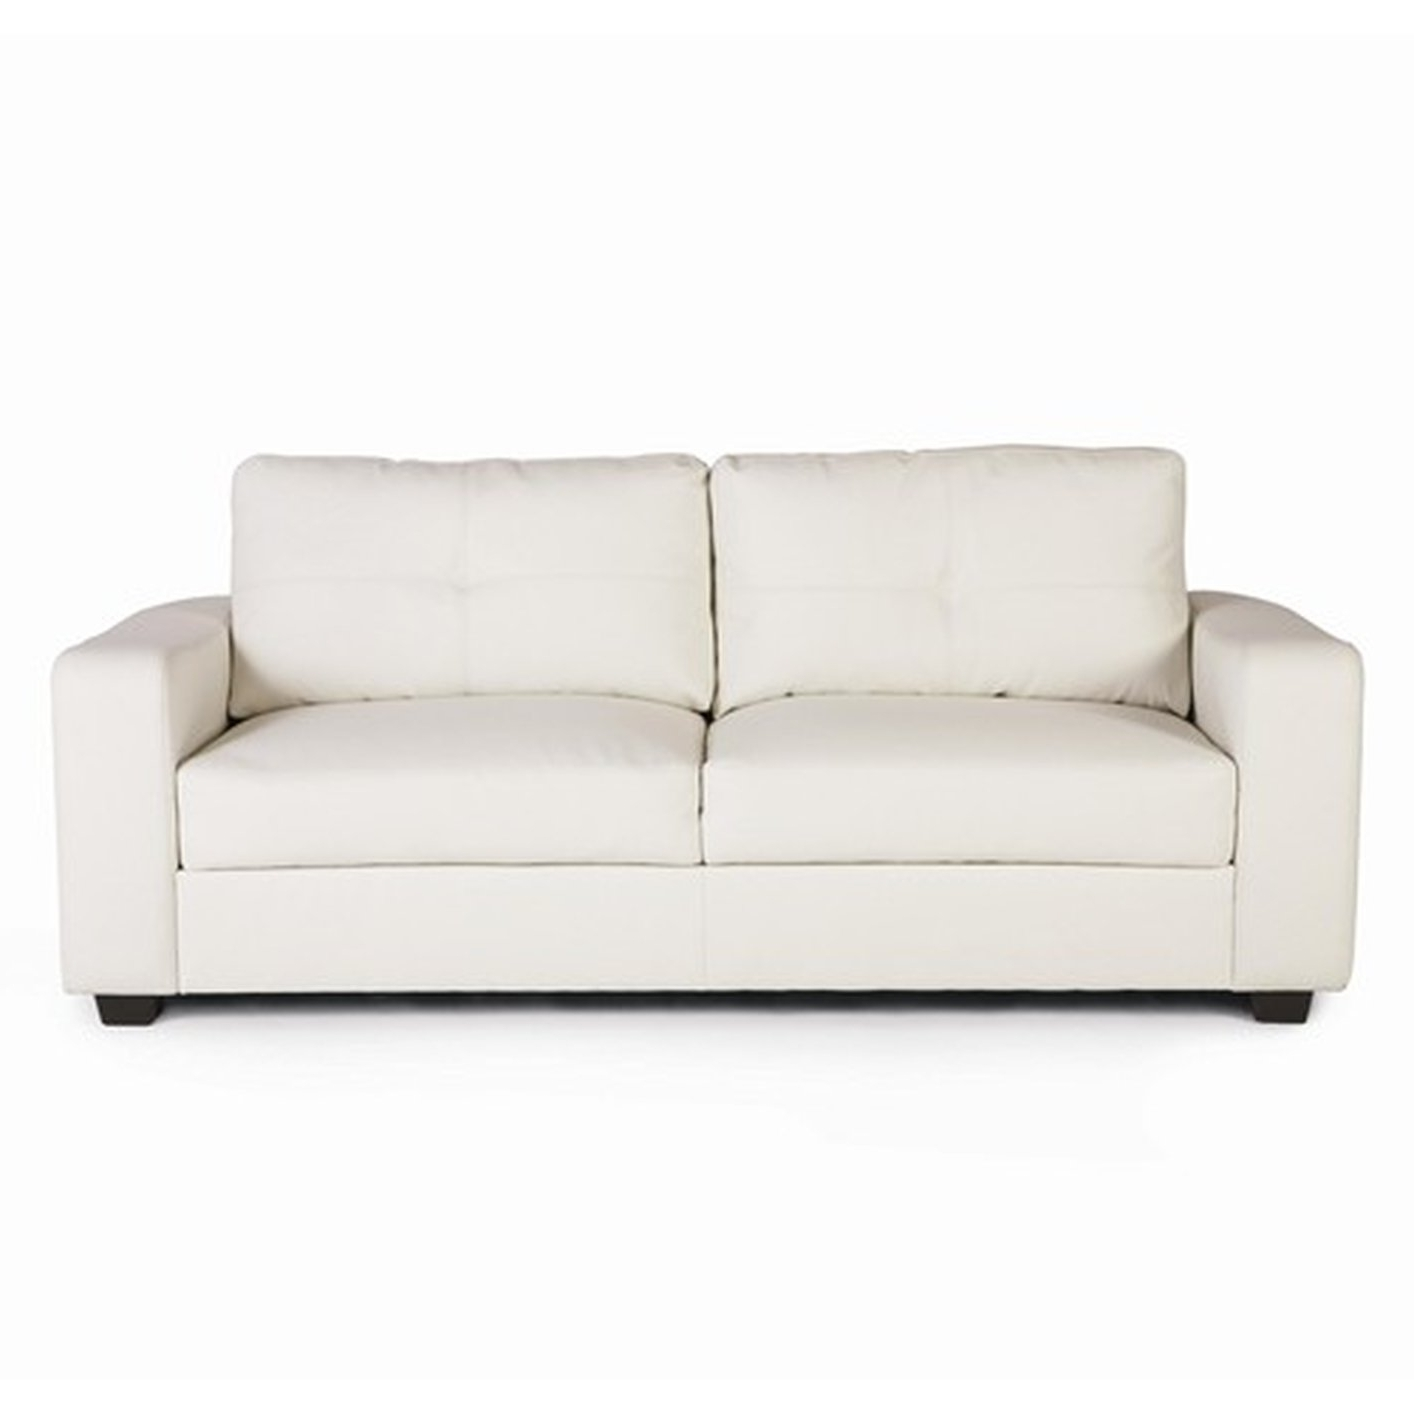 Jasmine White Leather Sofa – Steal A Sofa Furniture Outlet Los For Trendy White Sofa Chairs (View 15 of 15)